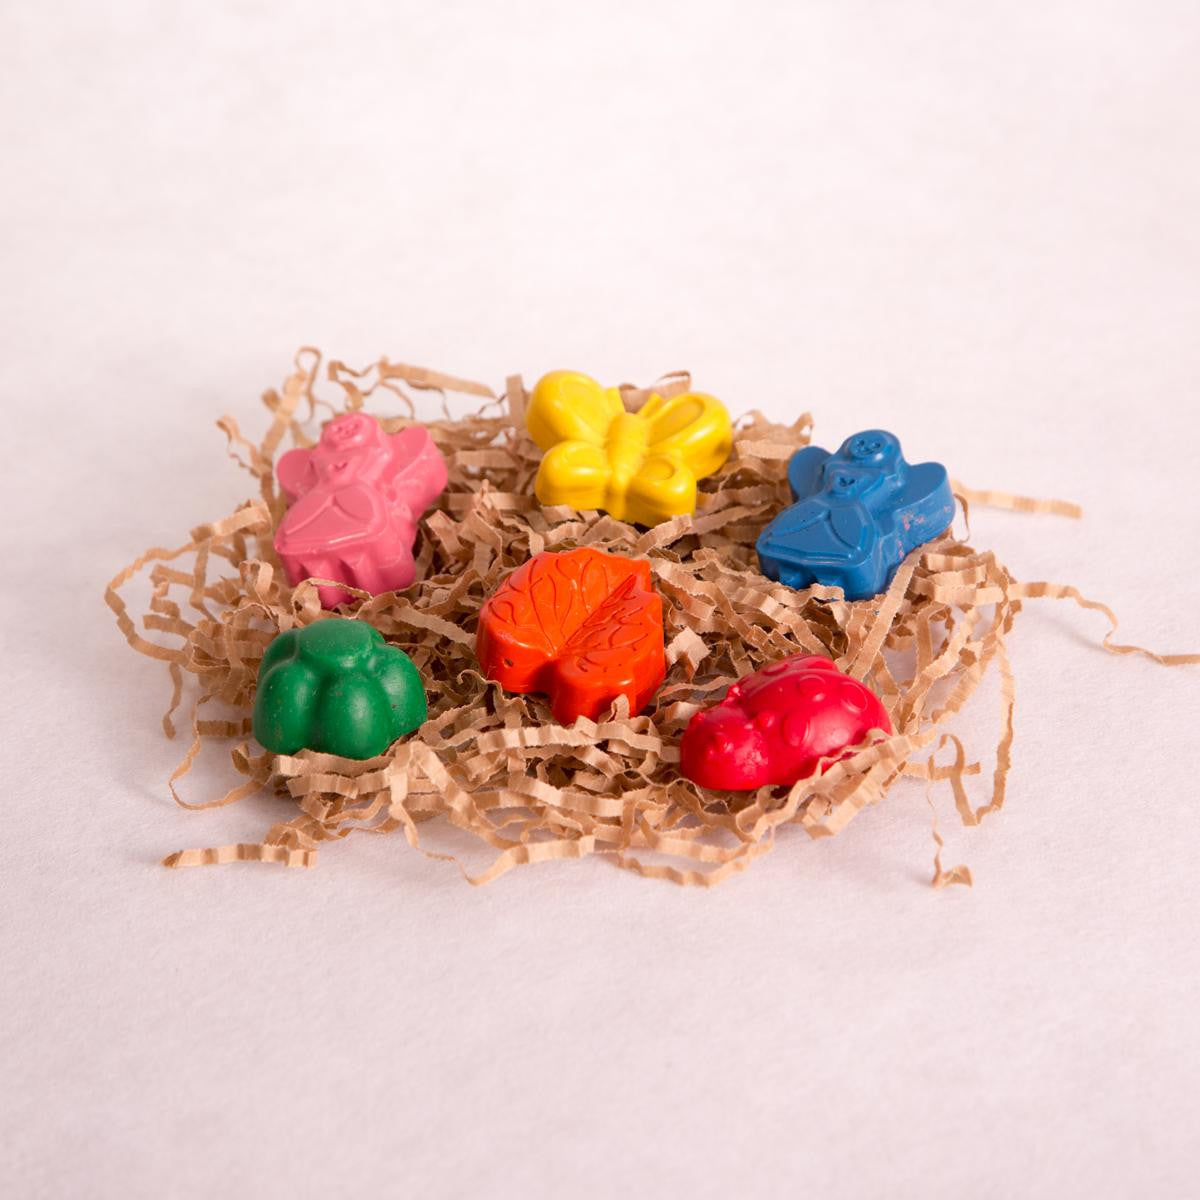 Fairy Garden Crayons - Crayons - Throw Some Seeds - Nature Inspired Gifts for the Home & Garden